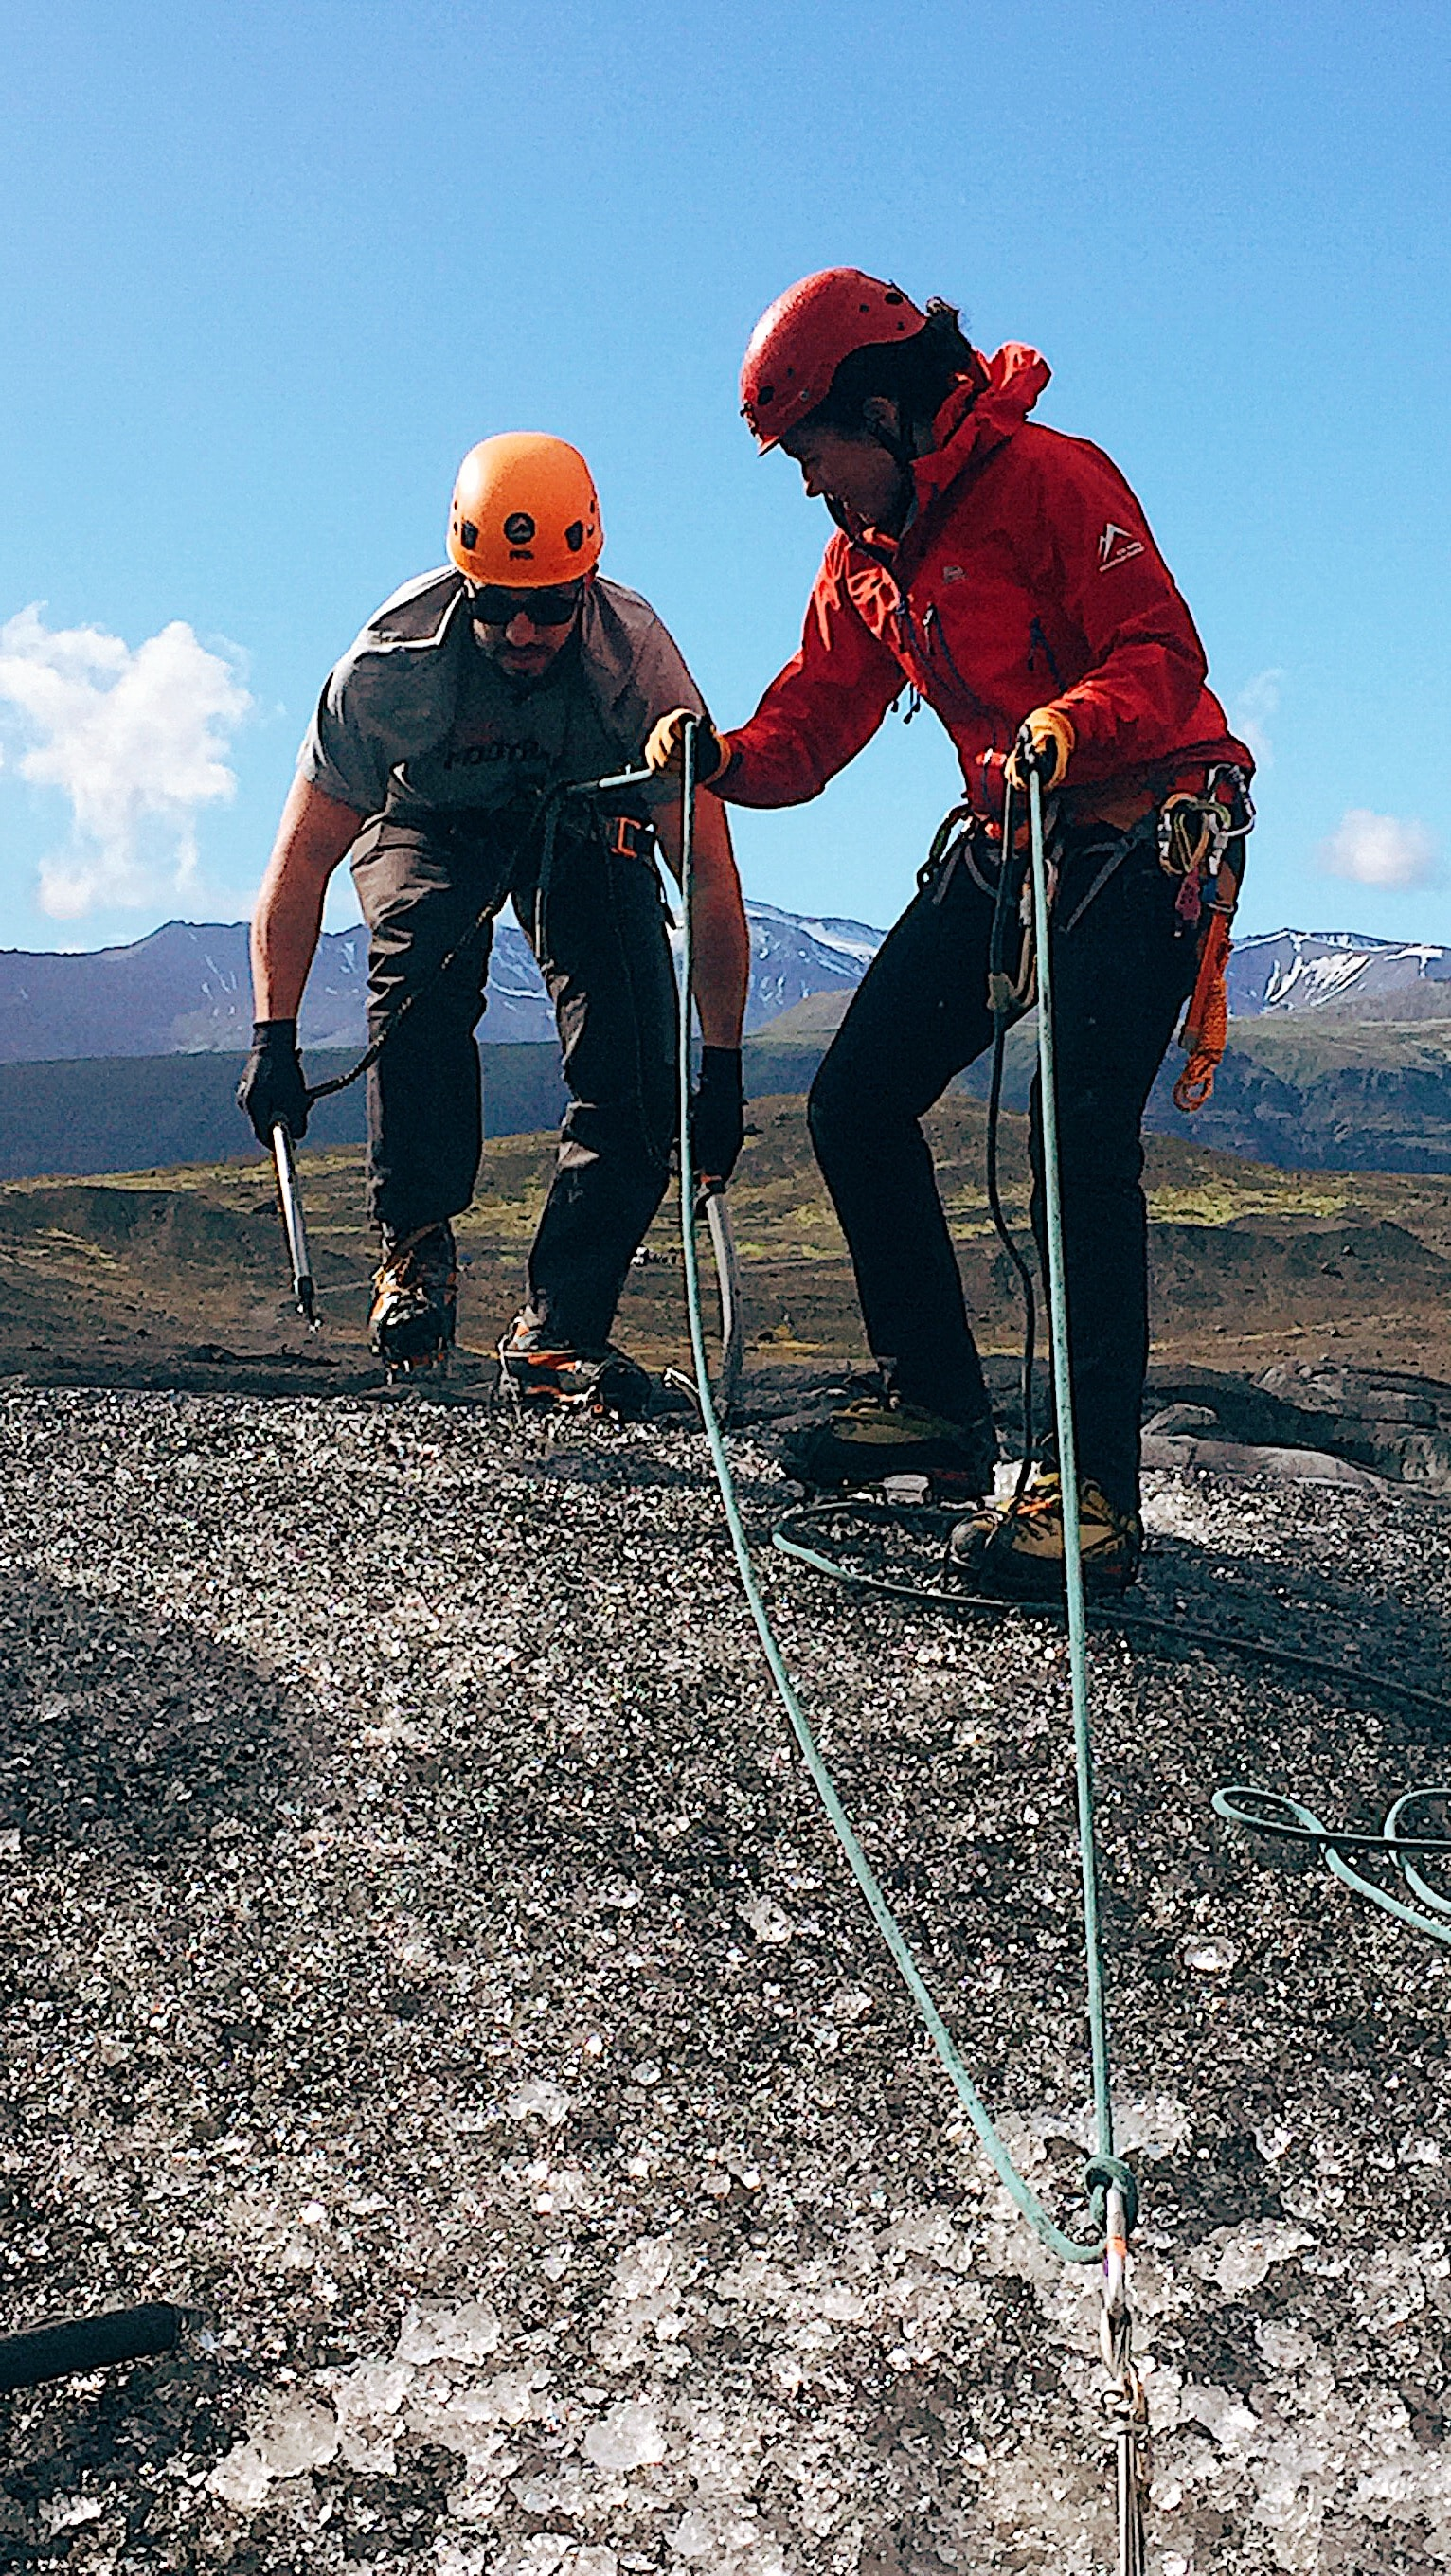 Getting ready to drop into a glacier crevasse and ice climb back up. #wheniniceland